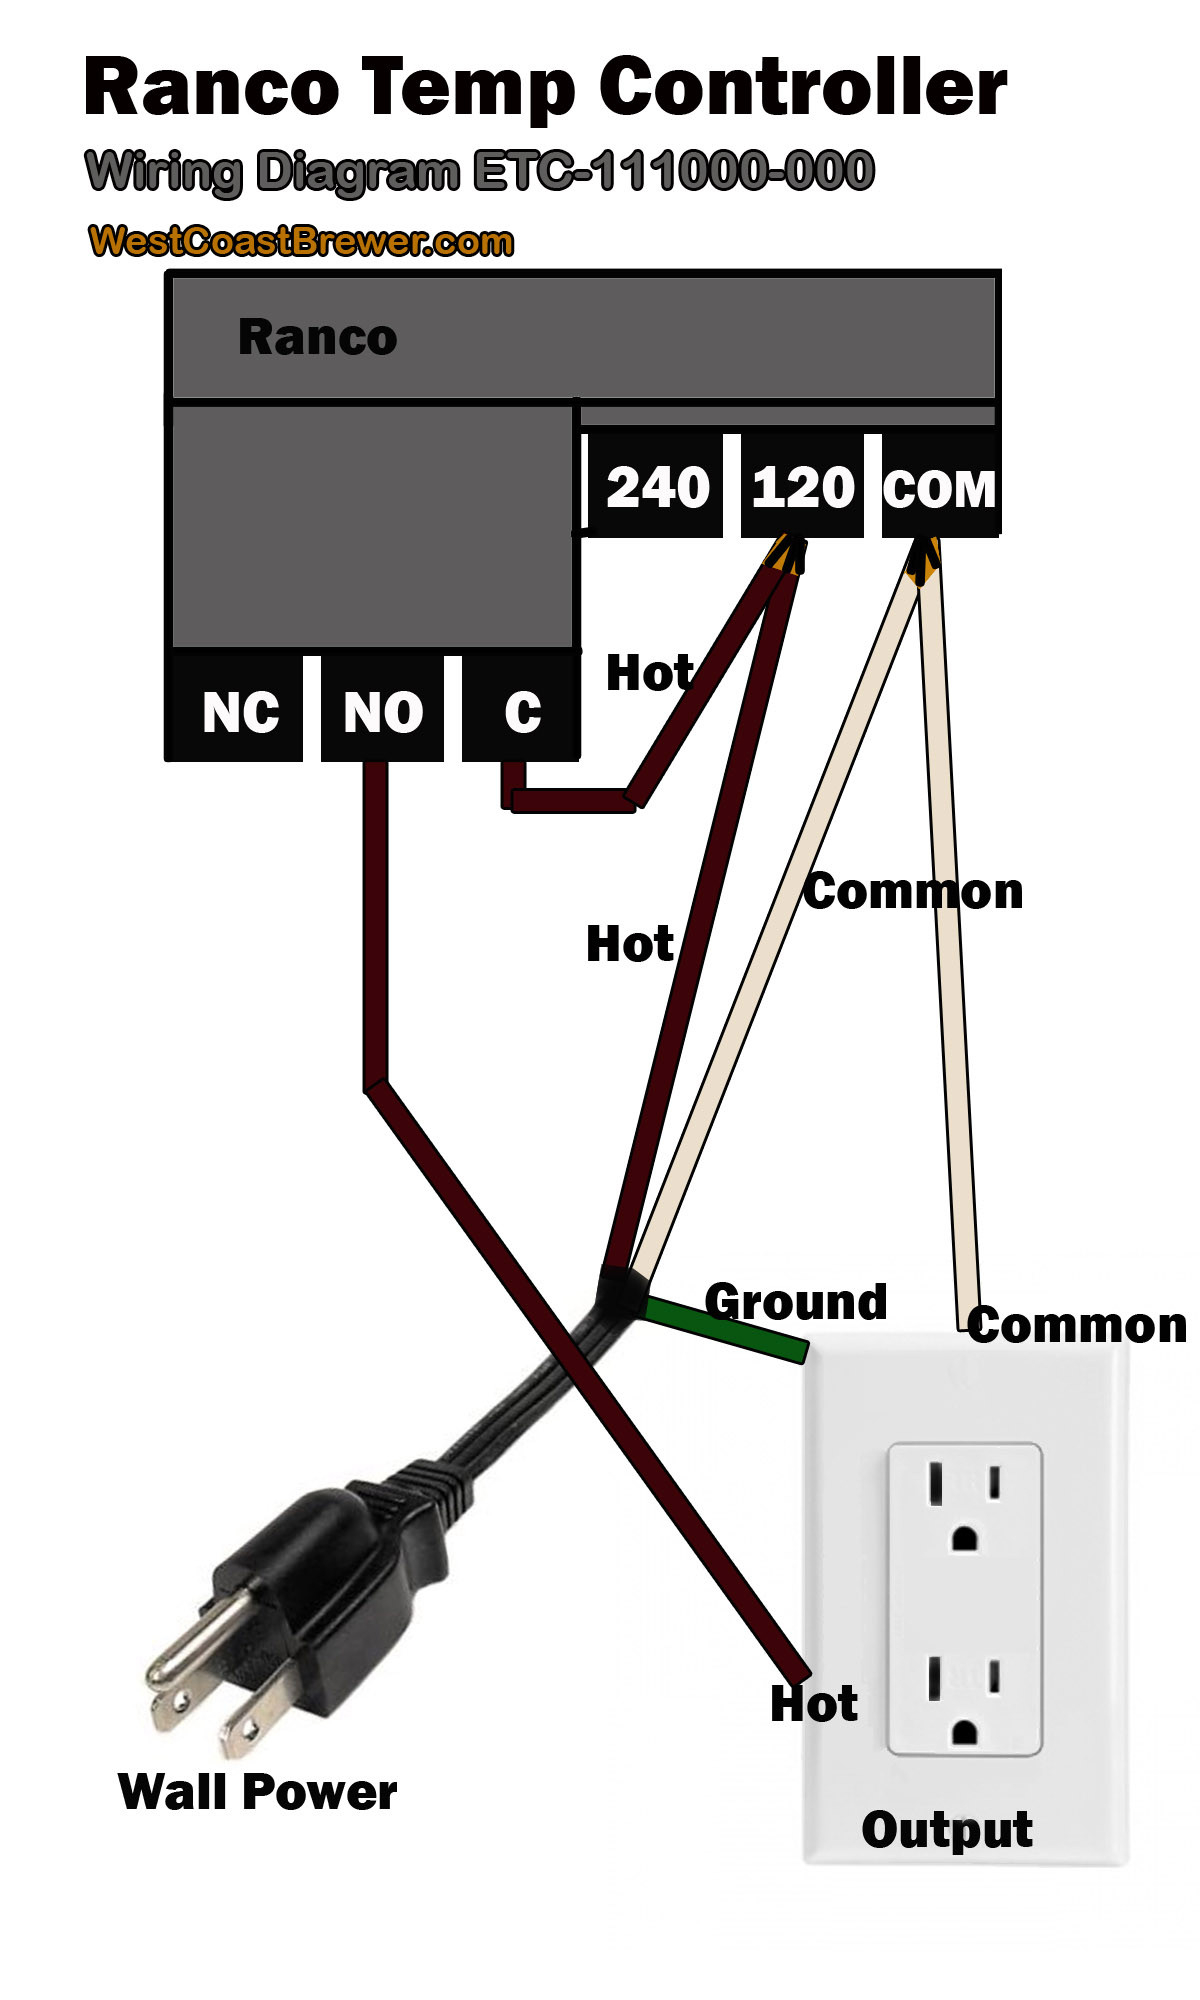 ranco temperature controller wiring diagram Collection-How To Wire A Ranco Digital Temperature Controller 120v Best Ideas que Wiring 6-m